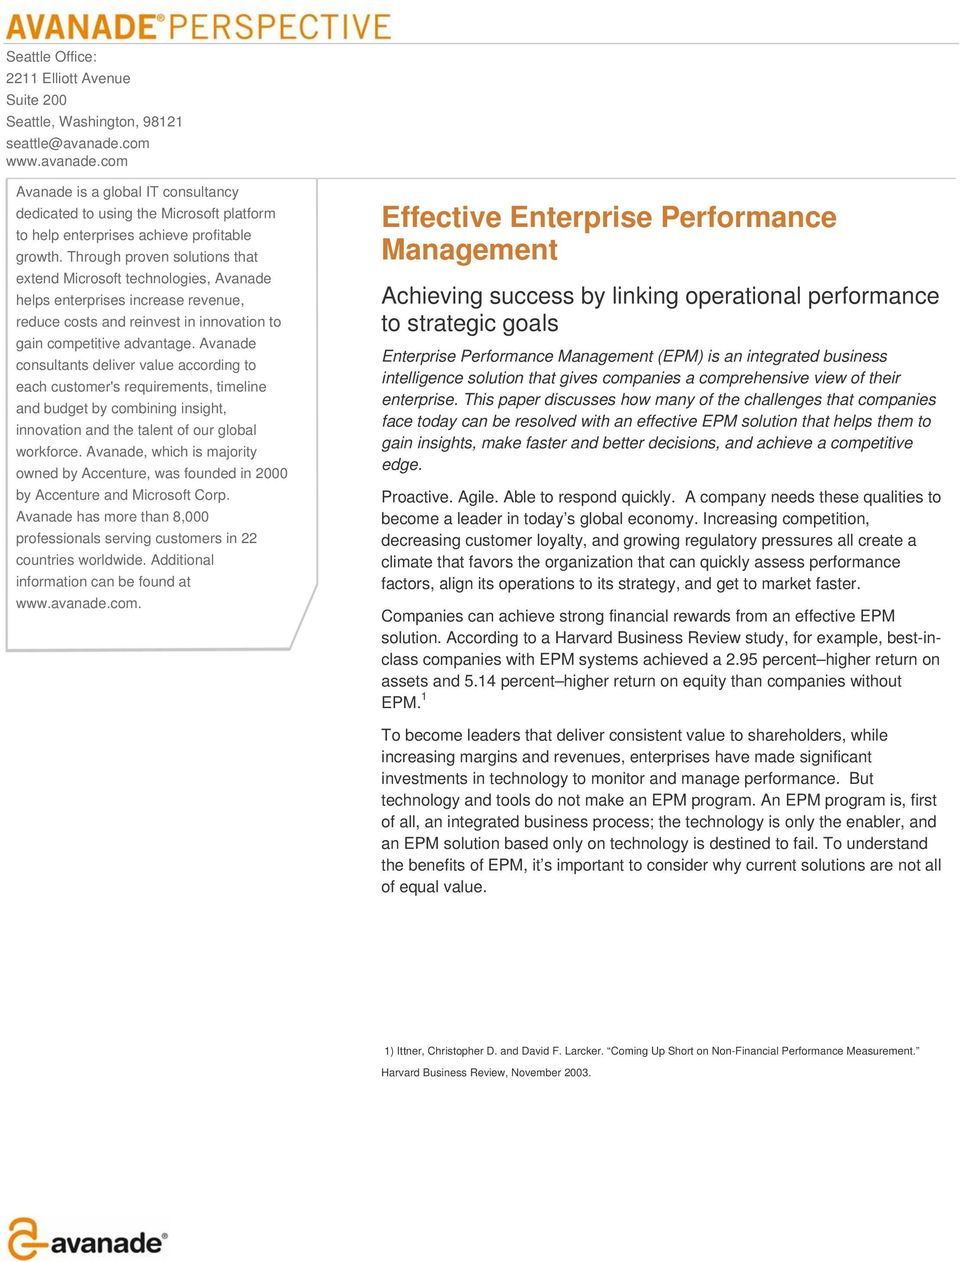 Through proven solutions that extend Microsoft technologies, Avanade helps enterprises increase revenue, reduce costs and reinvest in innovation to gain competitive advantage.